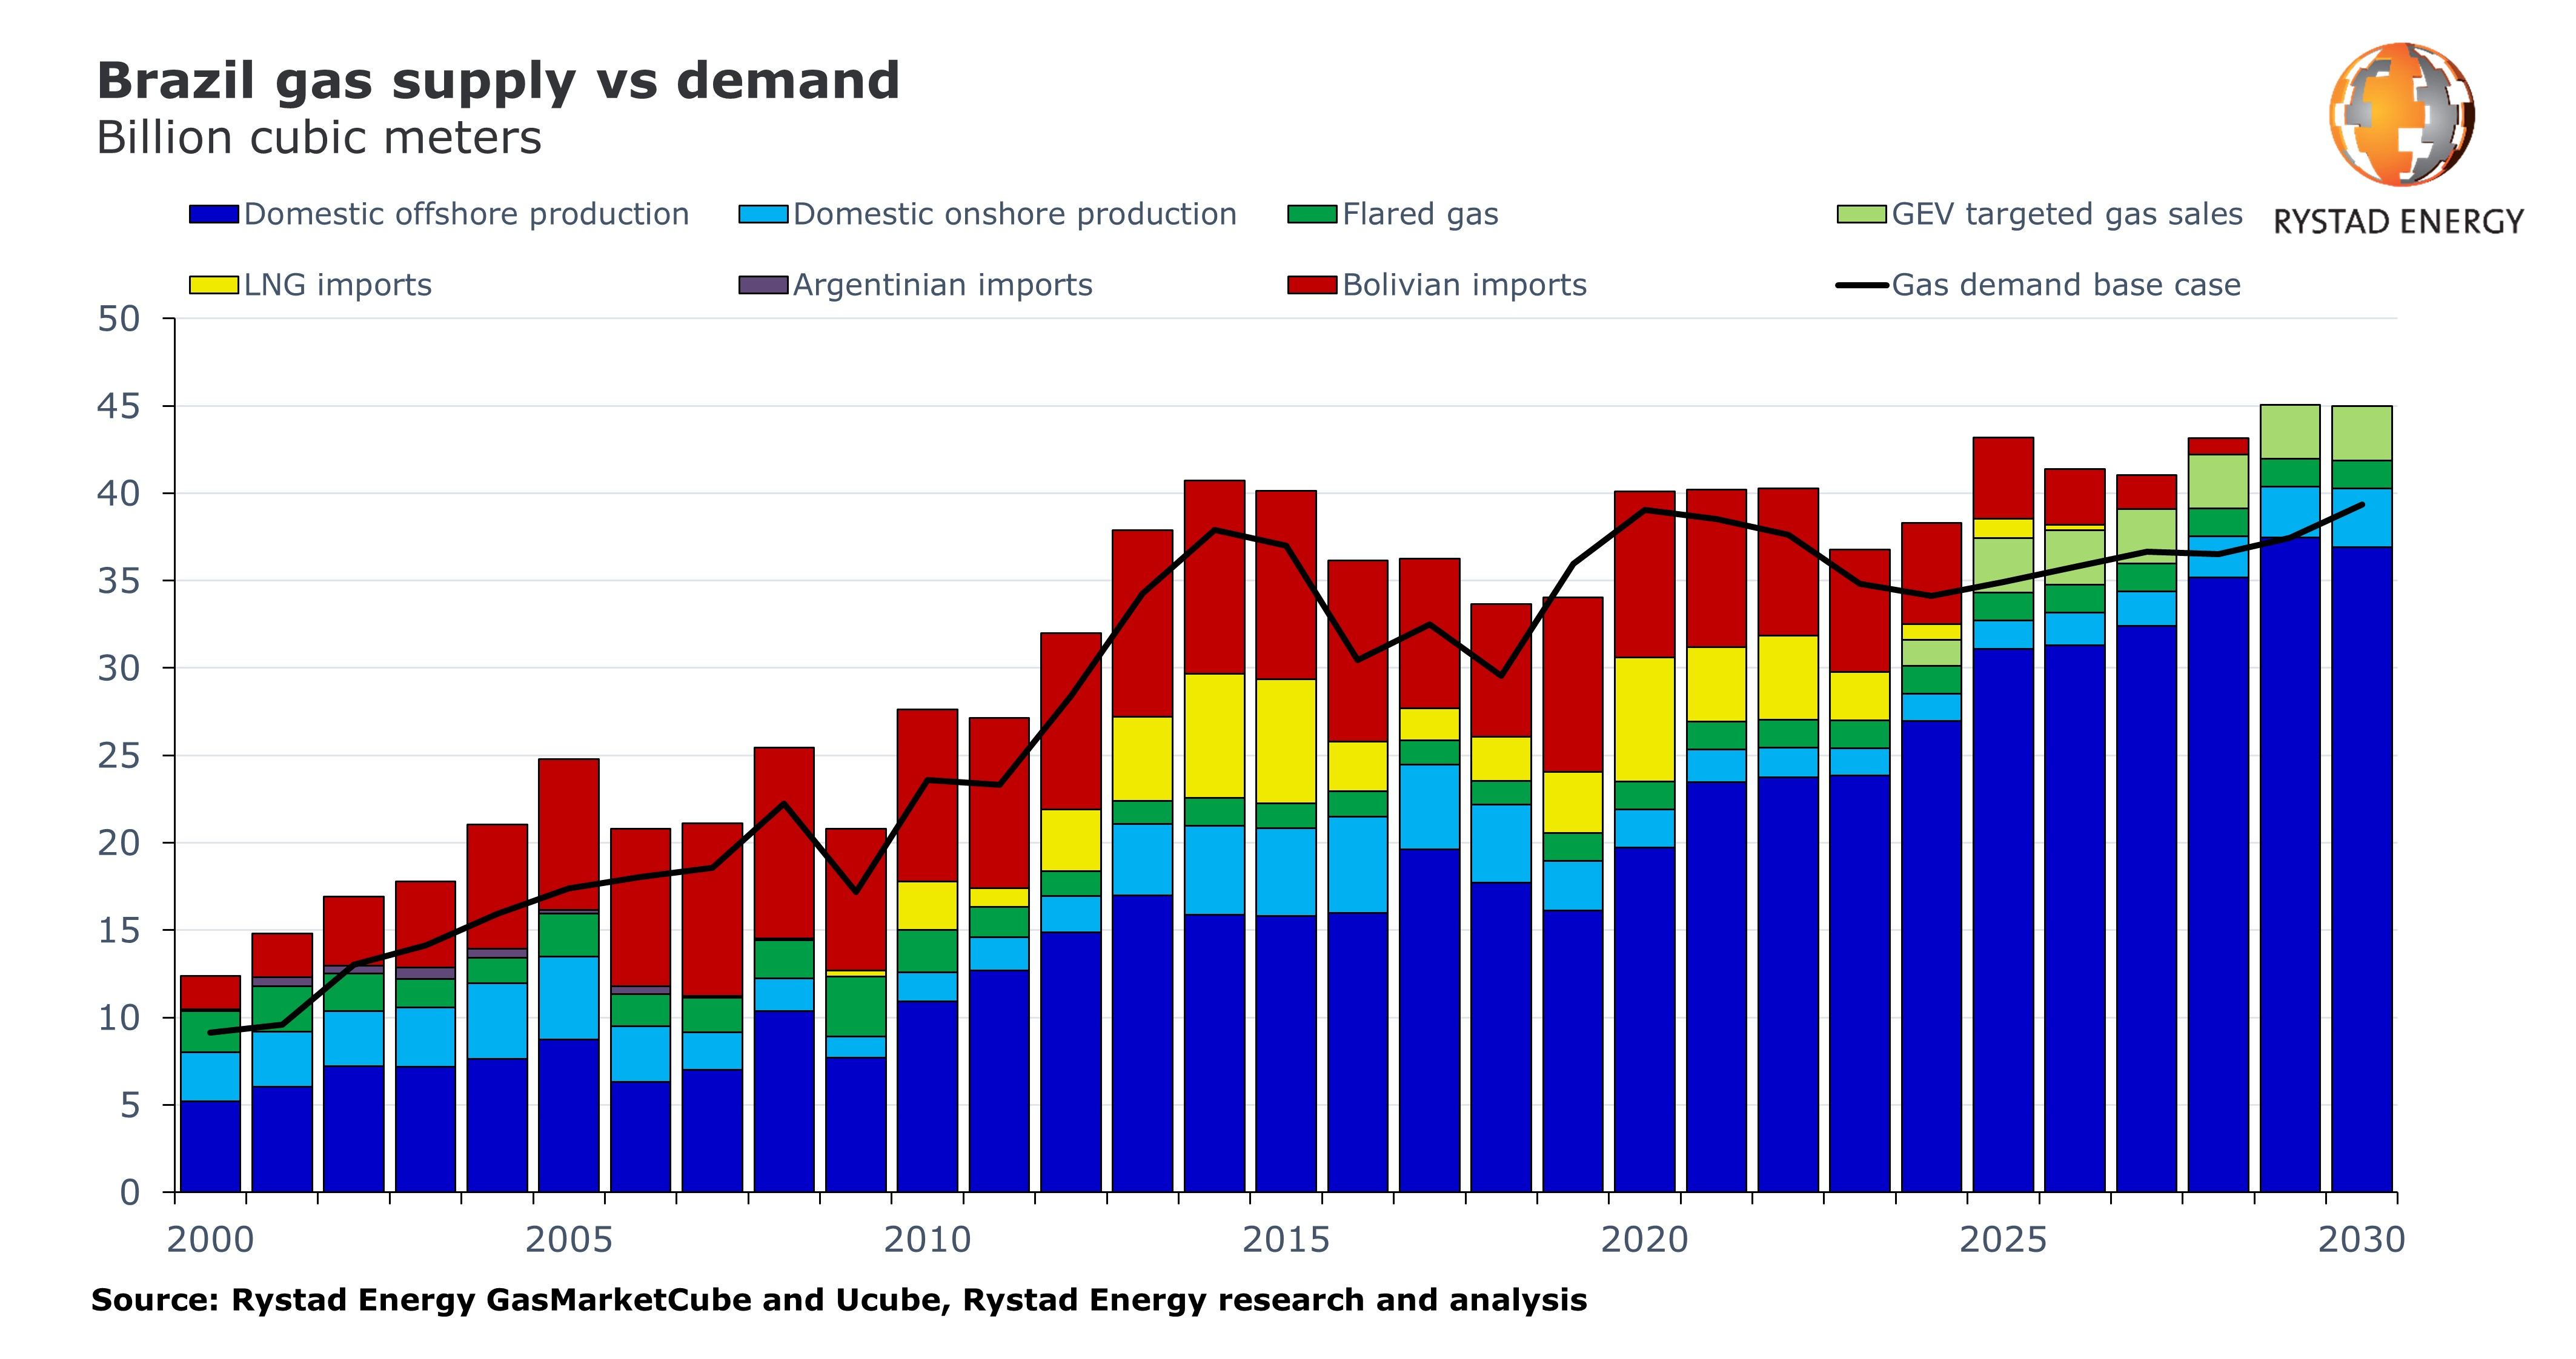 Chart showing brazil gas supply vs demand in billion cubic meters (2000 - 2030)